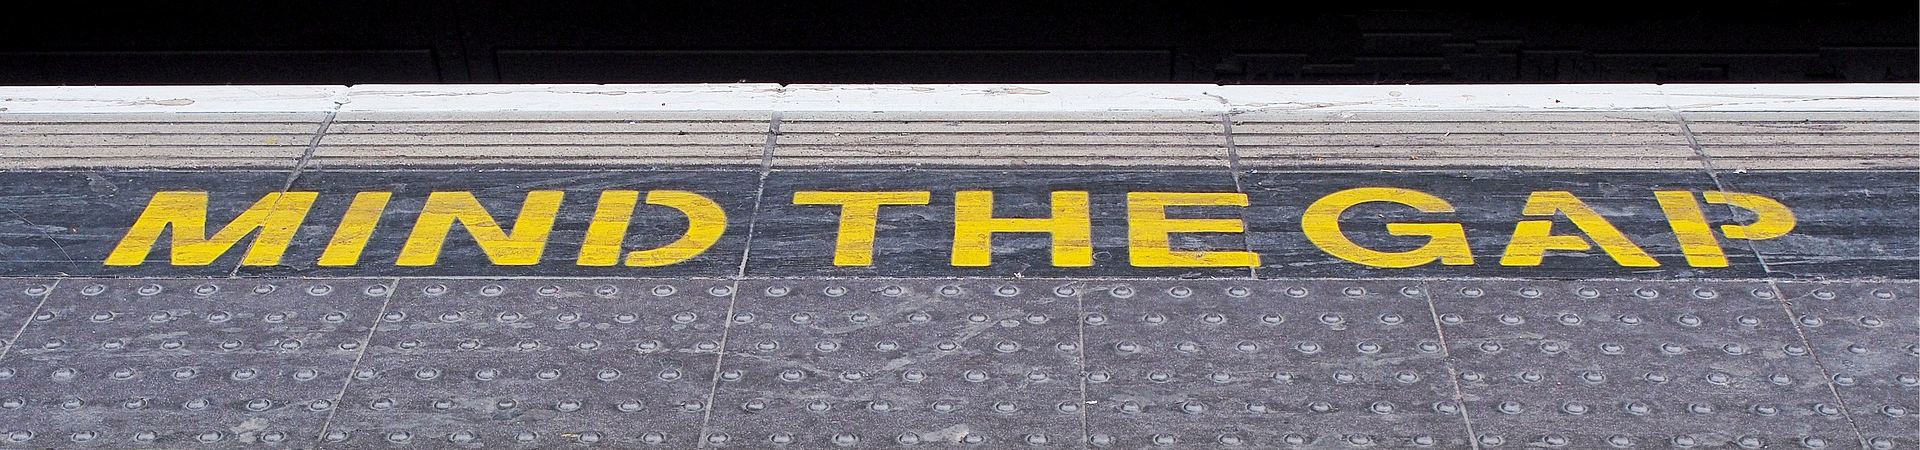 'Mind the gap' painted on the floor of the London Underground